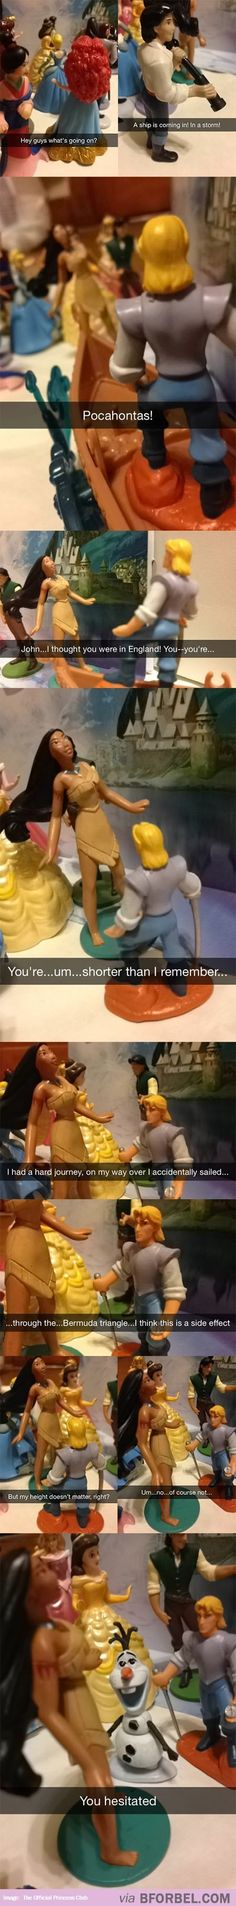 Disney Comic Snapchat Strip… bforbel.com